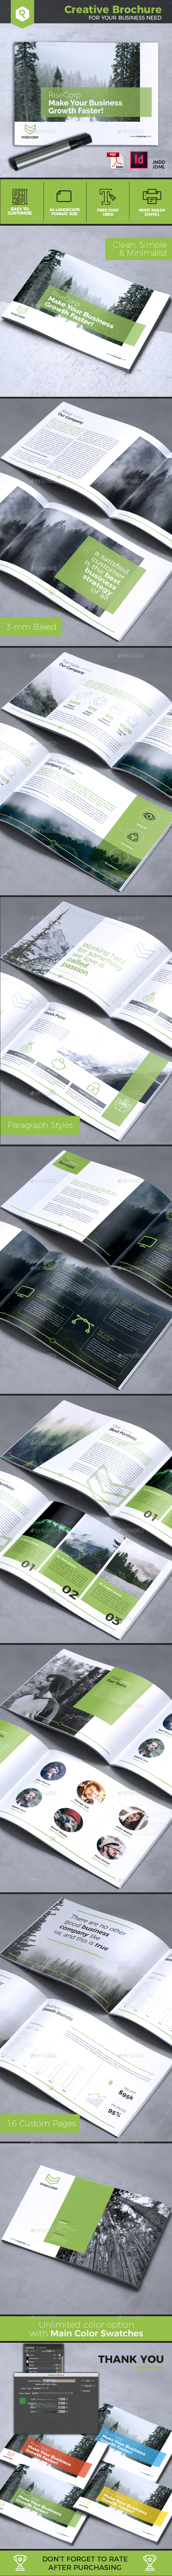 Creative Brochure Vol. 26 - A4 Landscape - Corporate Brochures